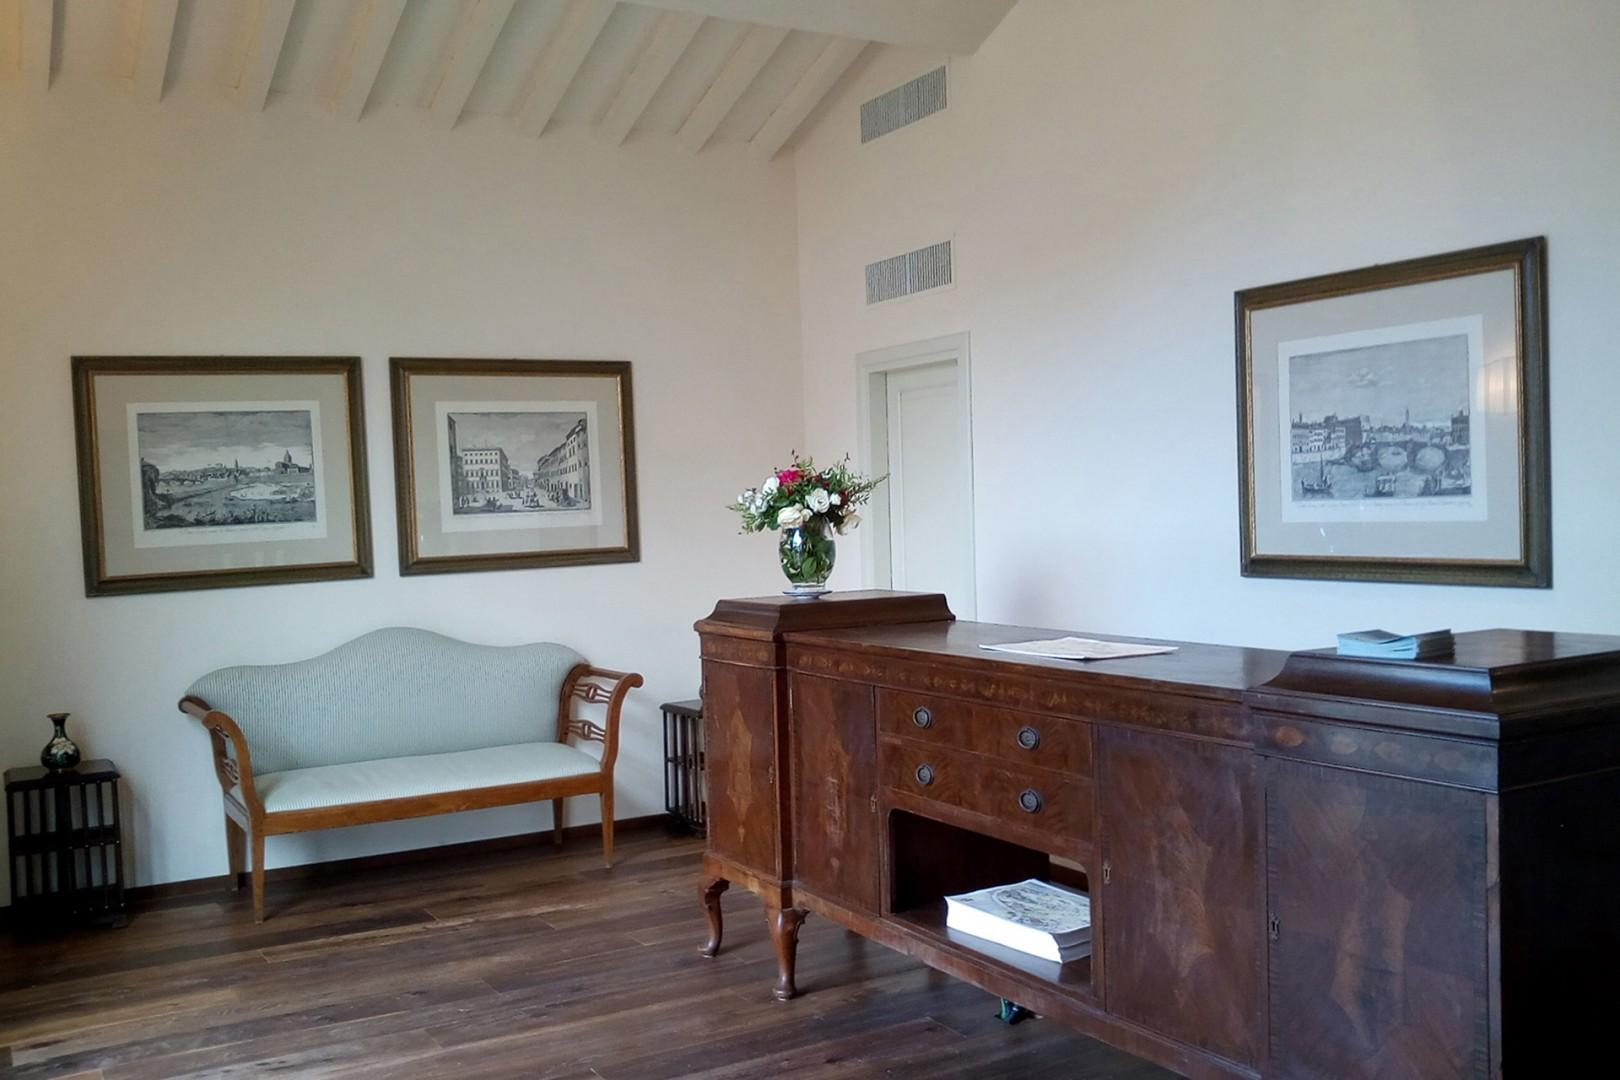 Welcome office staff will greet you on arrival, familiarize you with the villa.